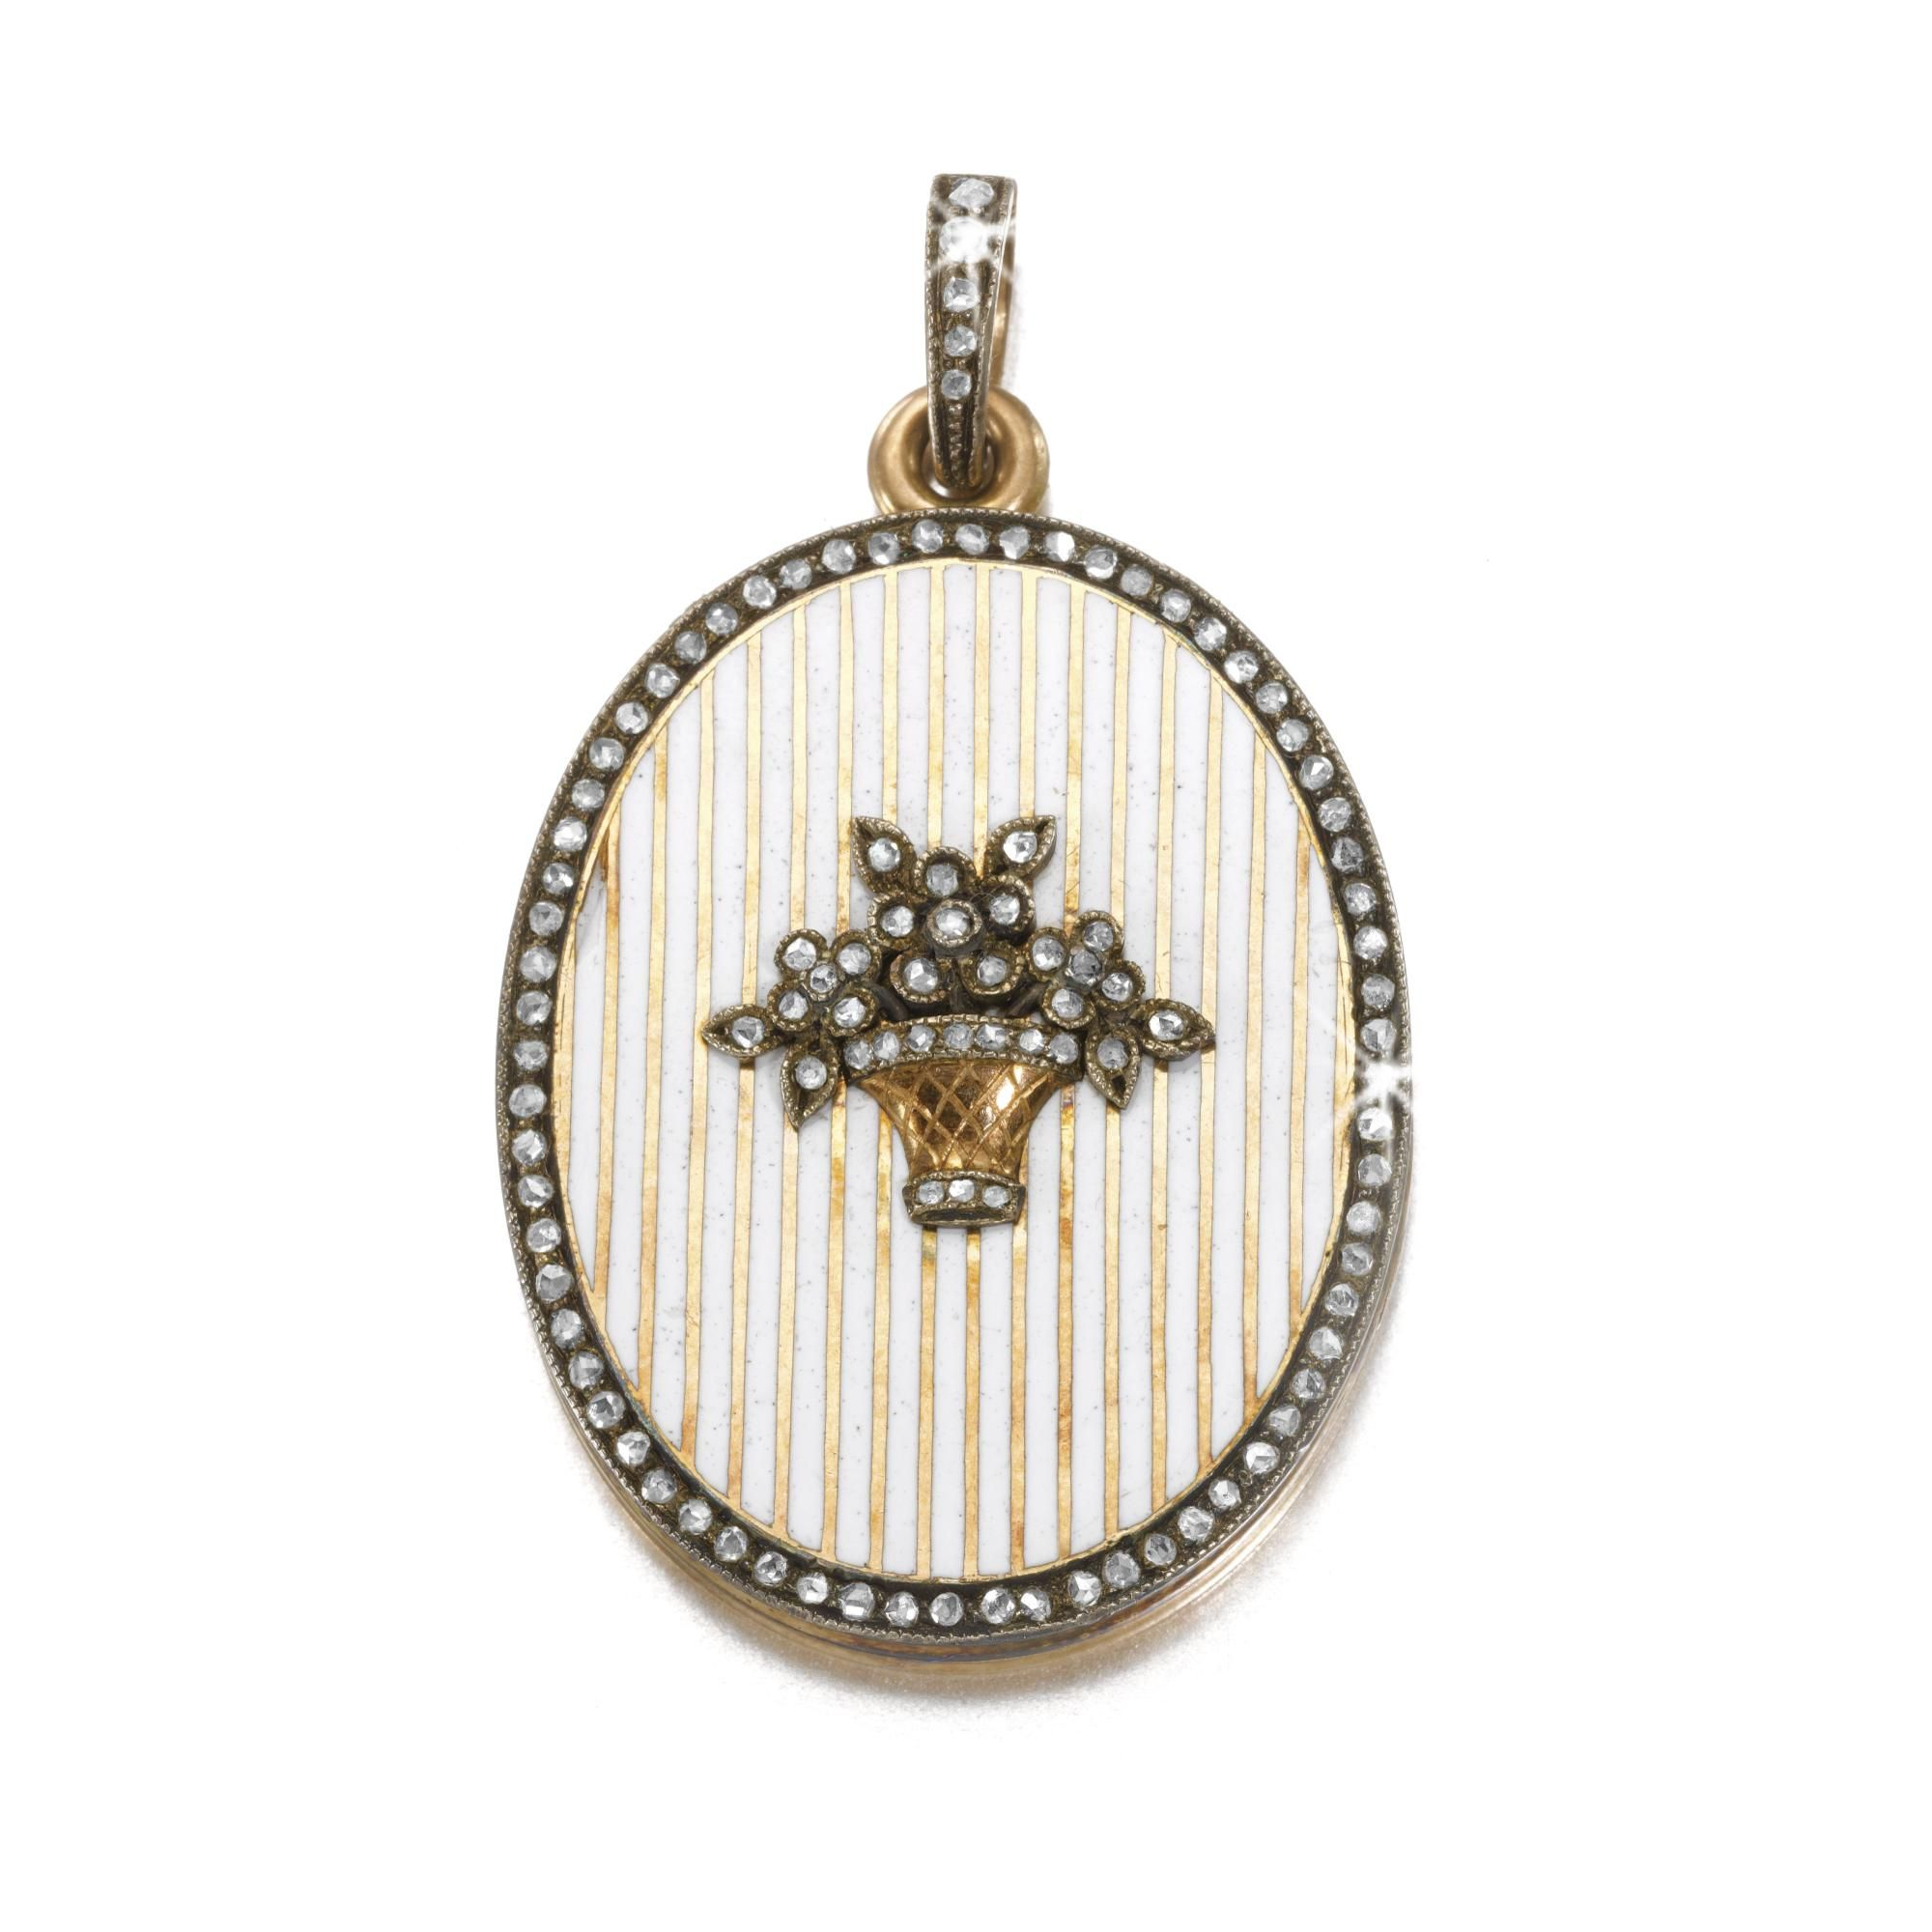 A fabergé jewelled and enamelled gold locket workmaster feodor